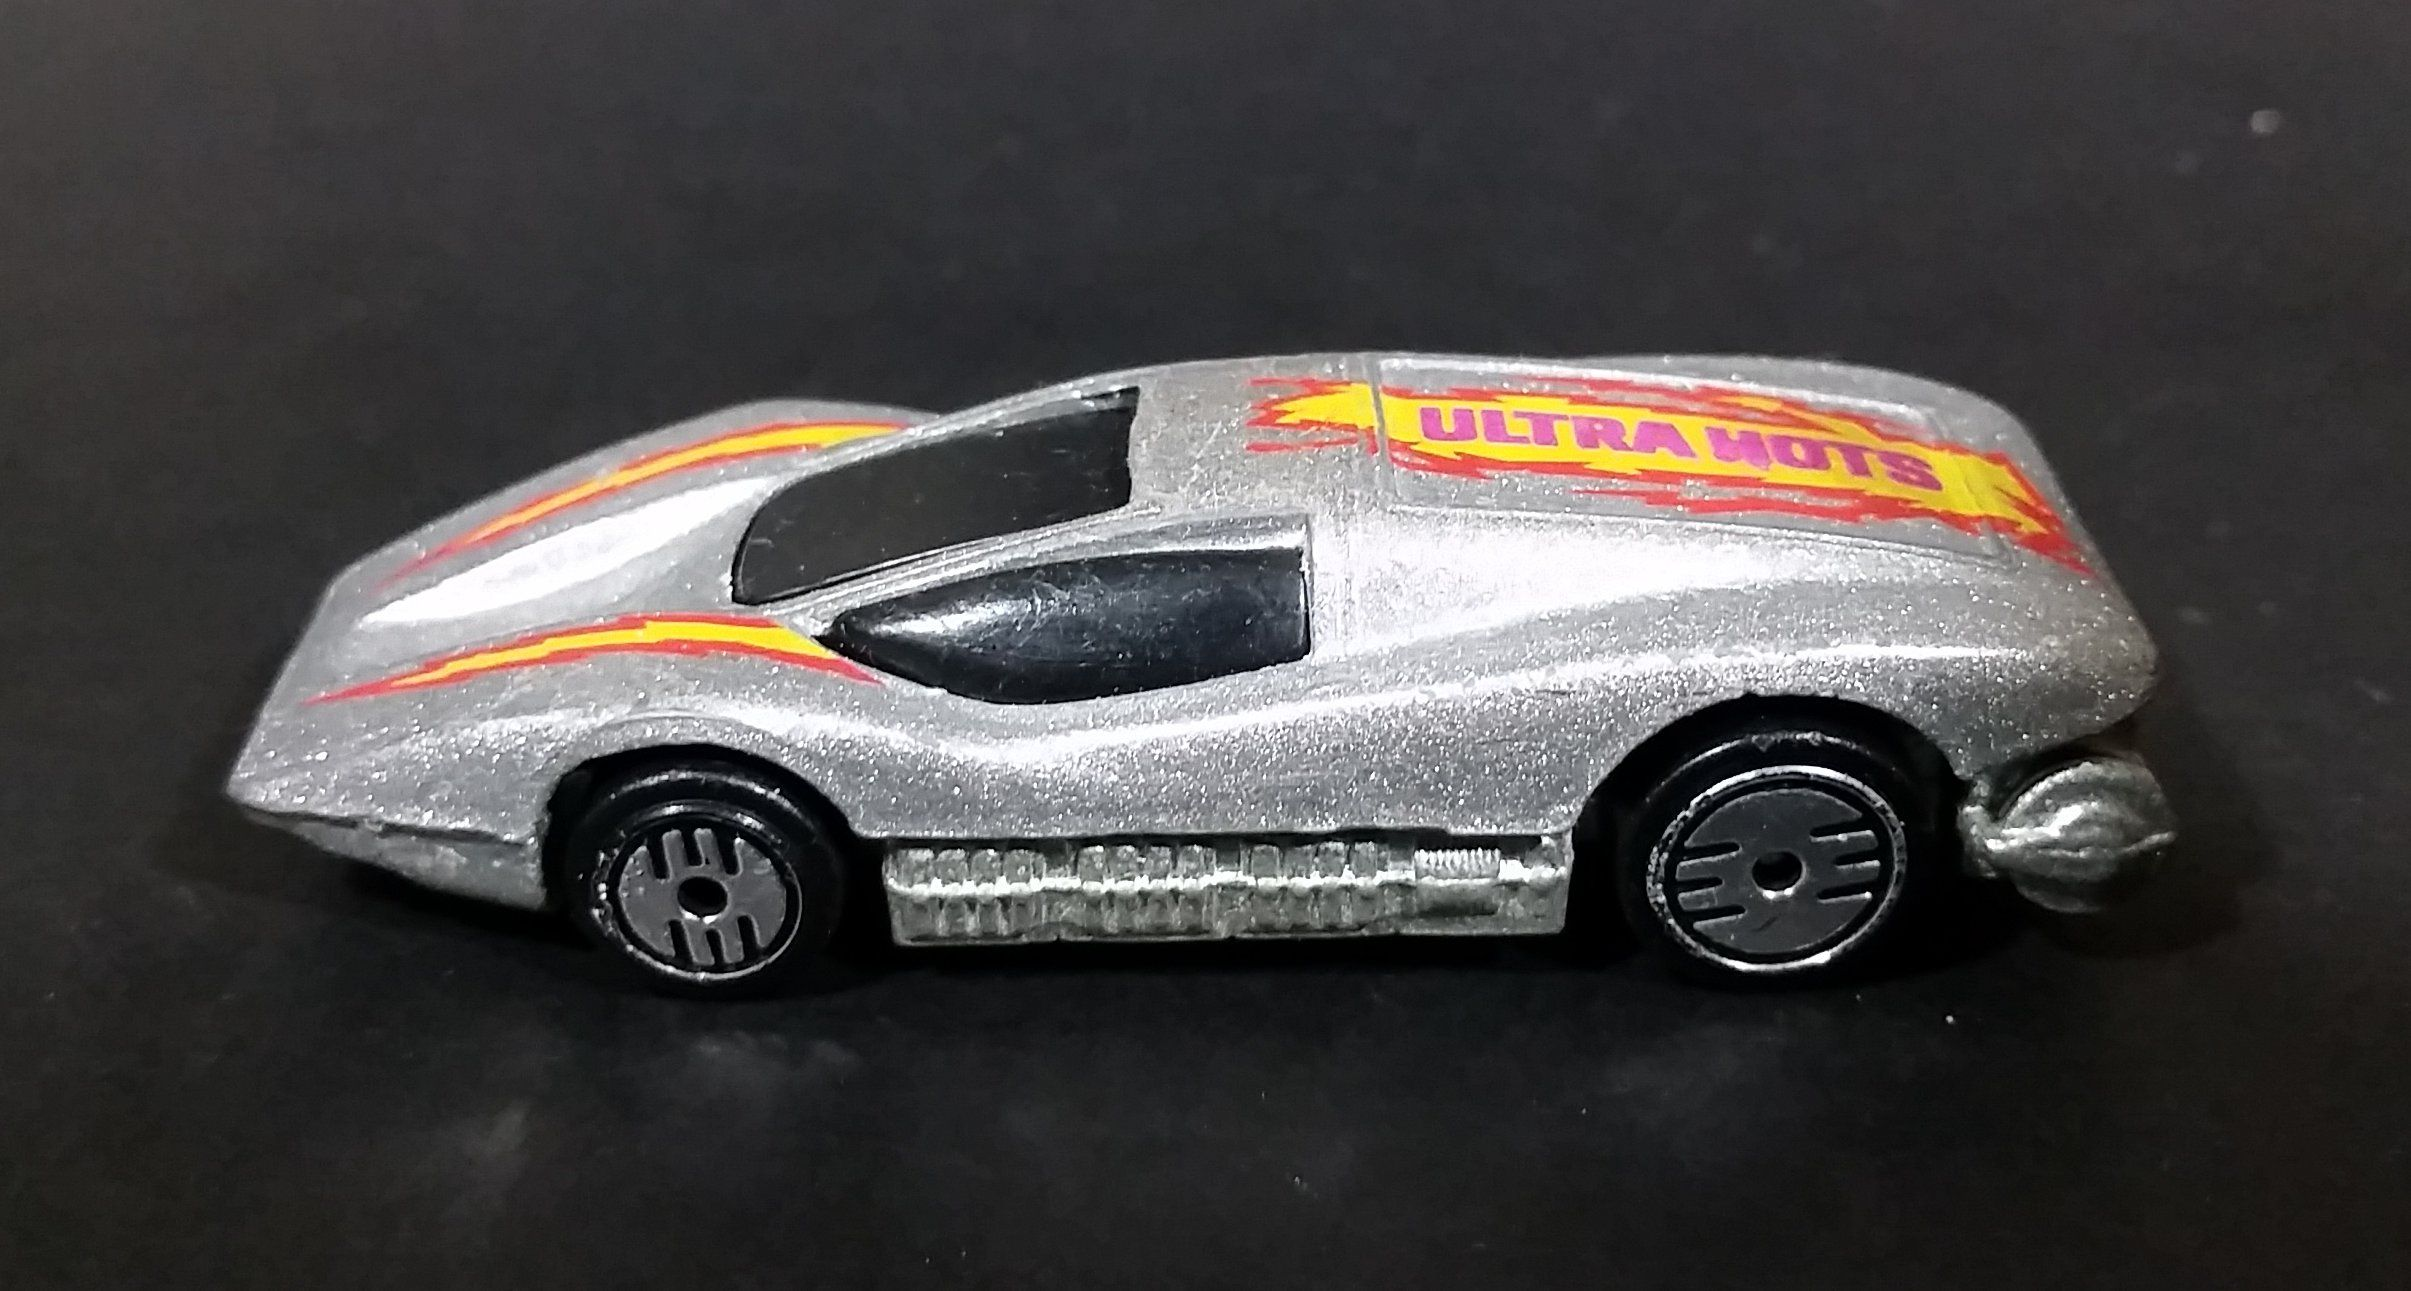 1985 hot wheels large charge silver bullet metallic silver